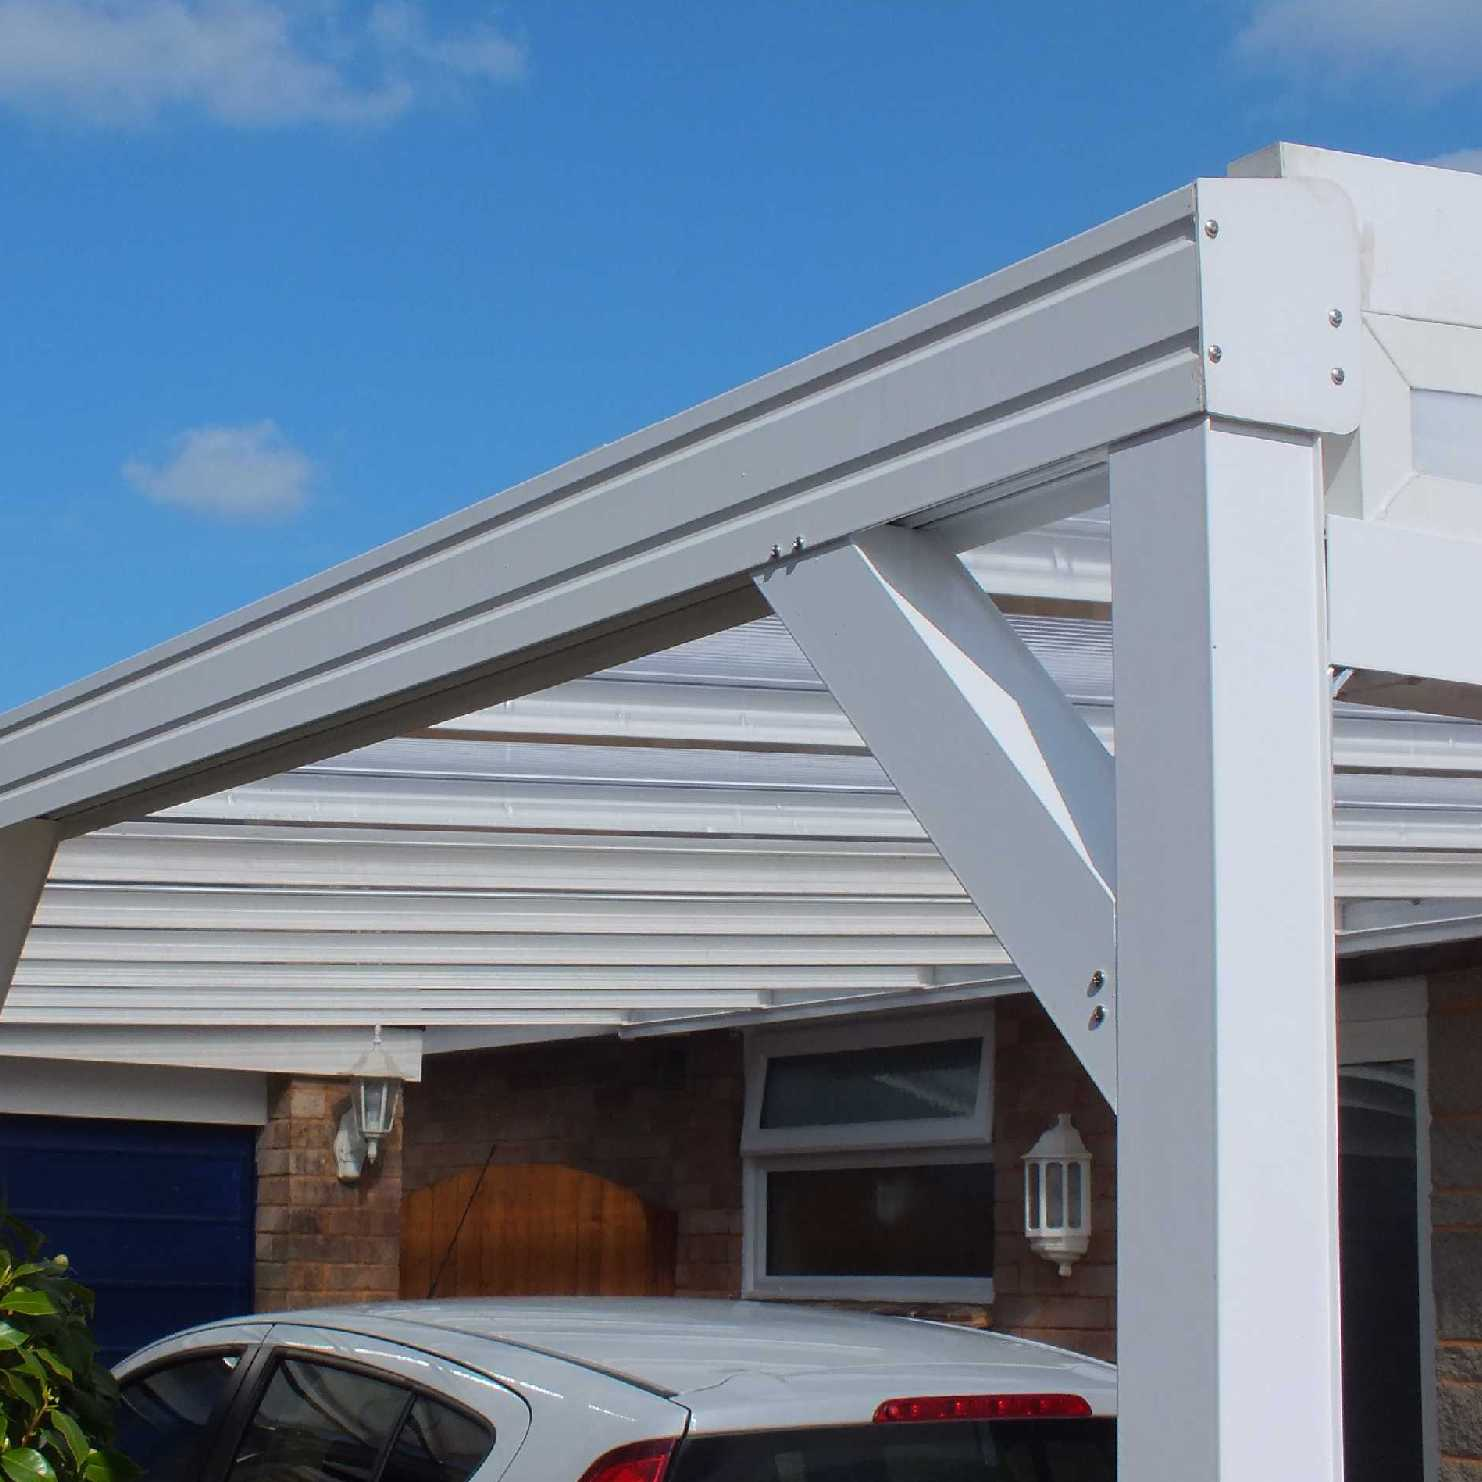 Great deals on Omega Smart White Lean-To Canopy with 16mm Polycarbonate Glazing - 12.0m (W) x 2.5m (P), (5) Supporting Posts